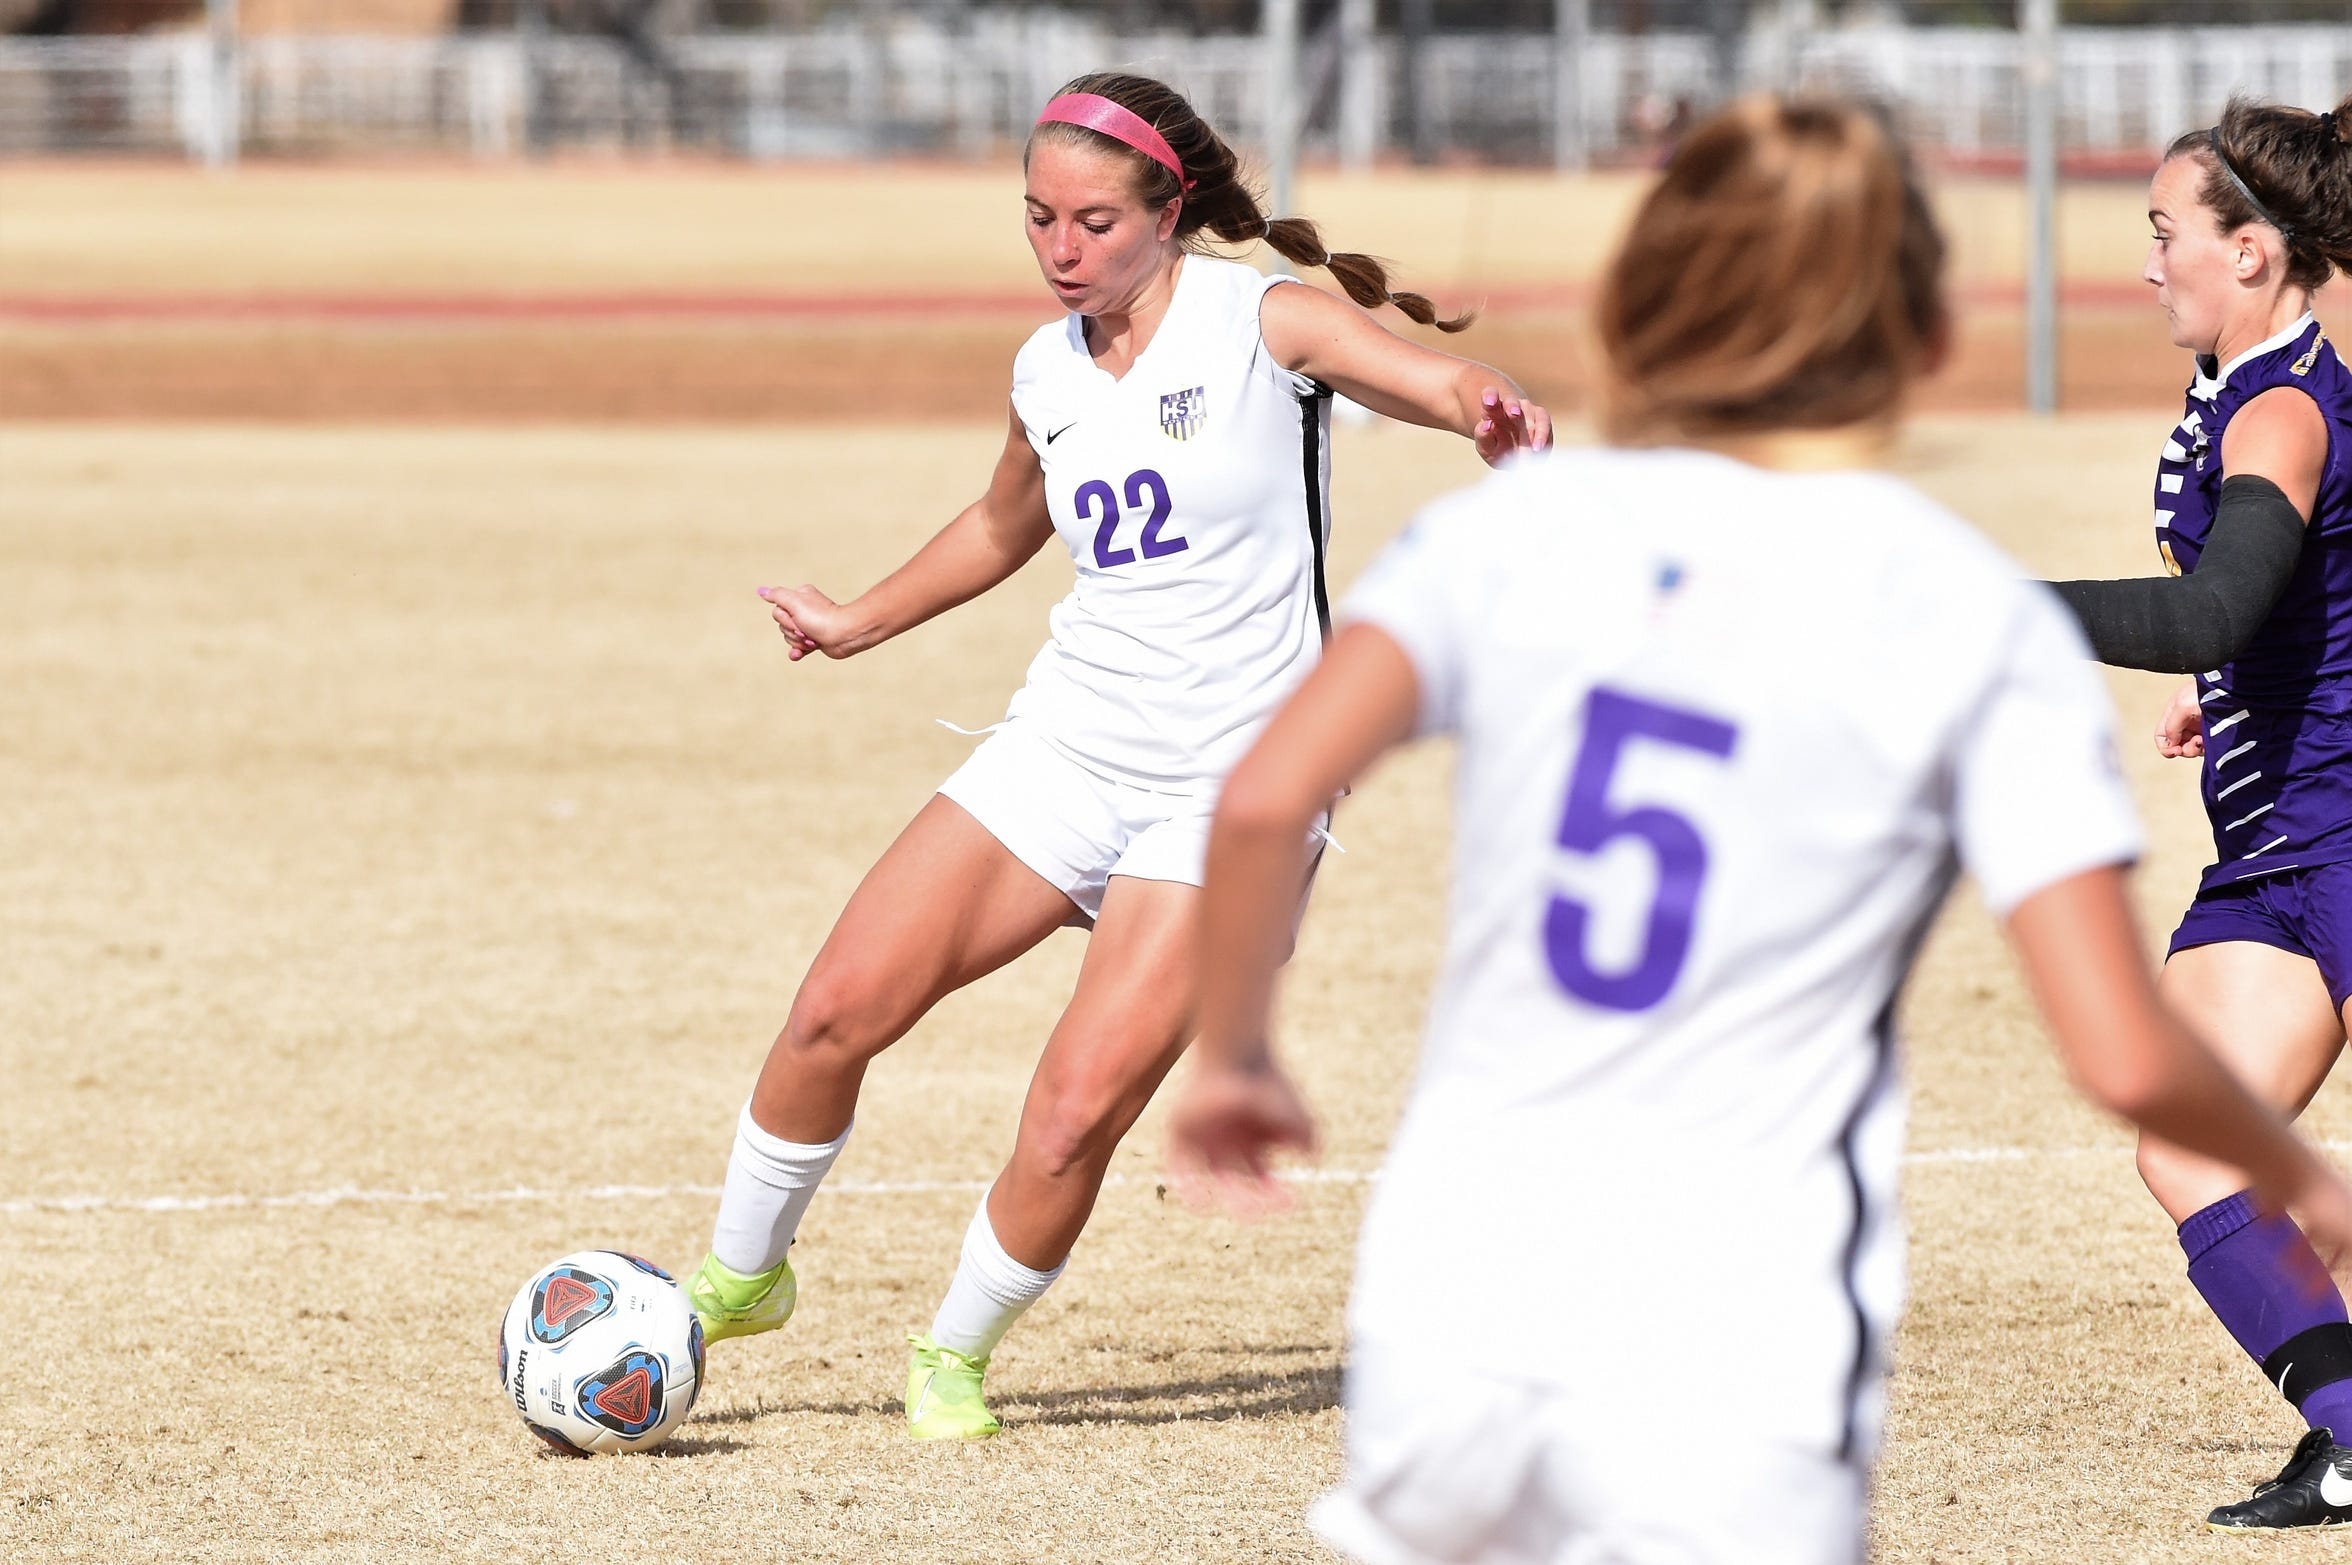 Hardin-Simmons' Kendell Groom (22) passes the ball against Mary Hardin-Baylor in the ASC tournament championship at the HSU Soccer Complex on Sunday, Nov. 10, 2019. The Cowgirls won 2-0 for their 17th-straight tournament title.